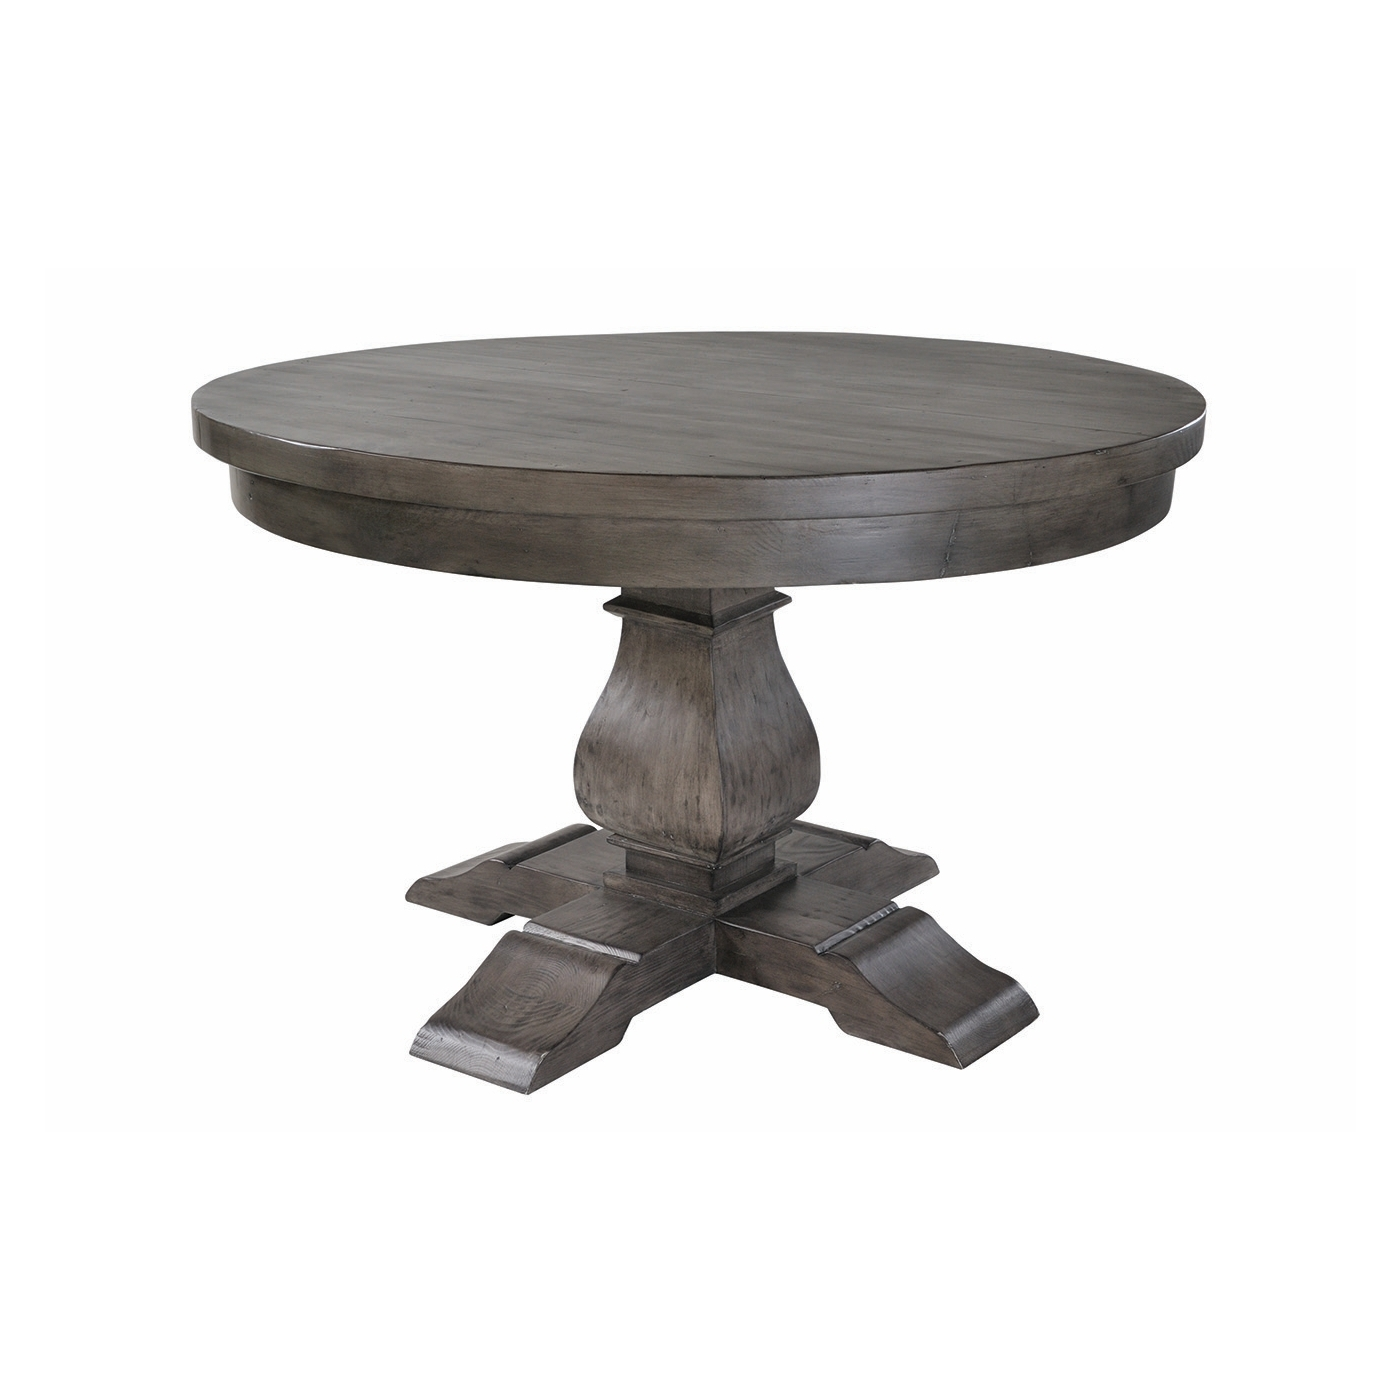 2018 Bradford Dining Tables Pertaining To Solid Dark Wood 130Cm Round Dining Table (View 21 of 25)